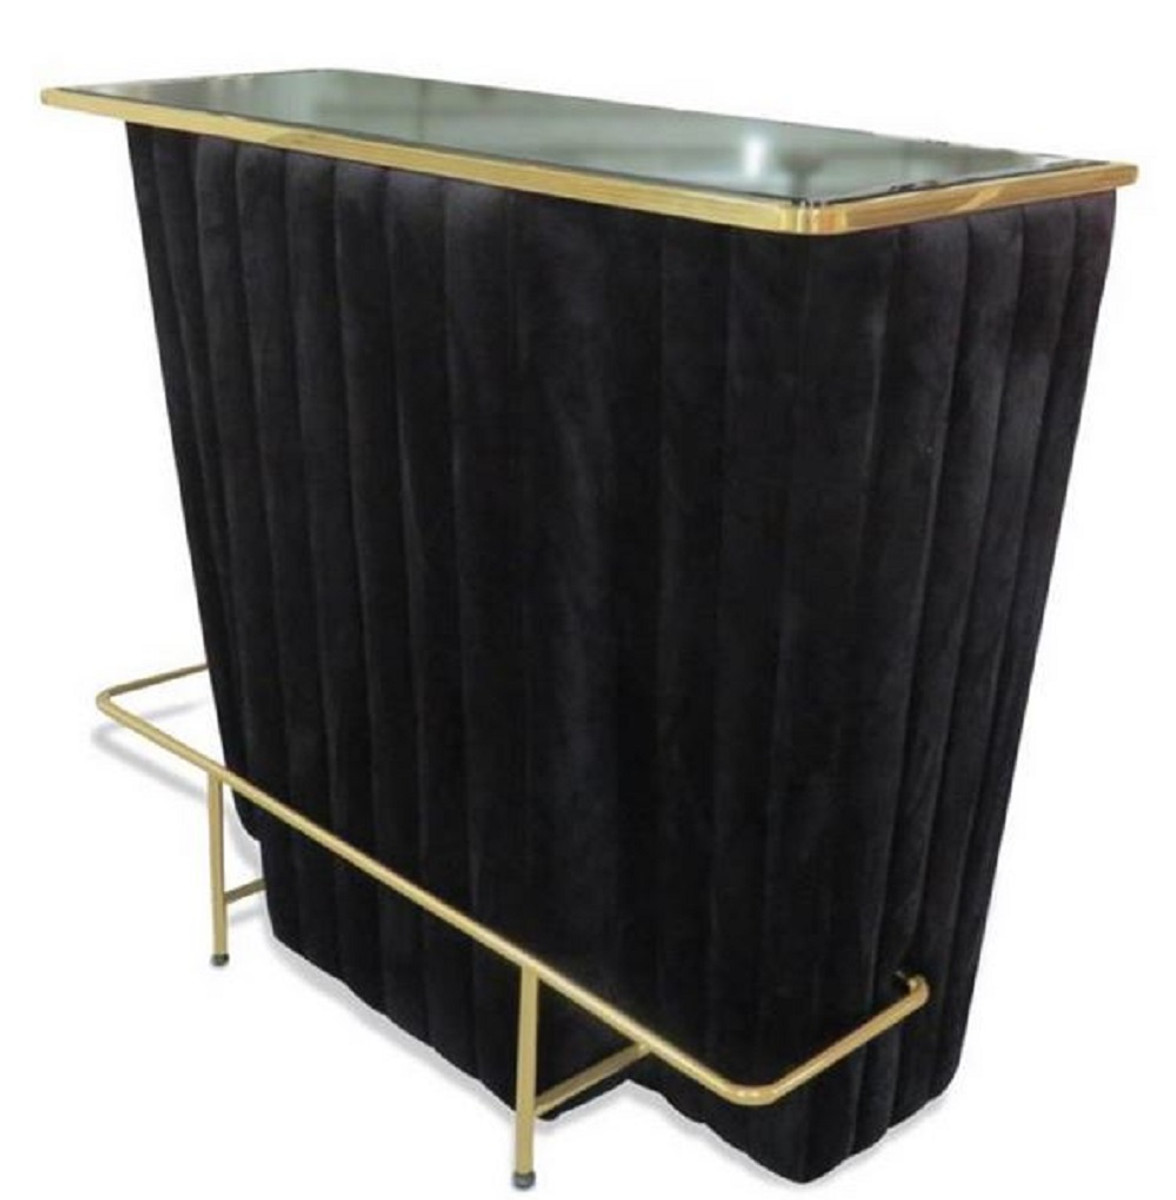 Casa Padrino Bar Weinschrank Casa Padrino Luxury Bar Counter Black Gold 120 X 48 X H